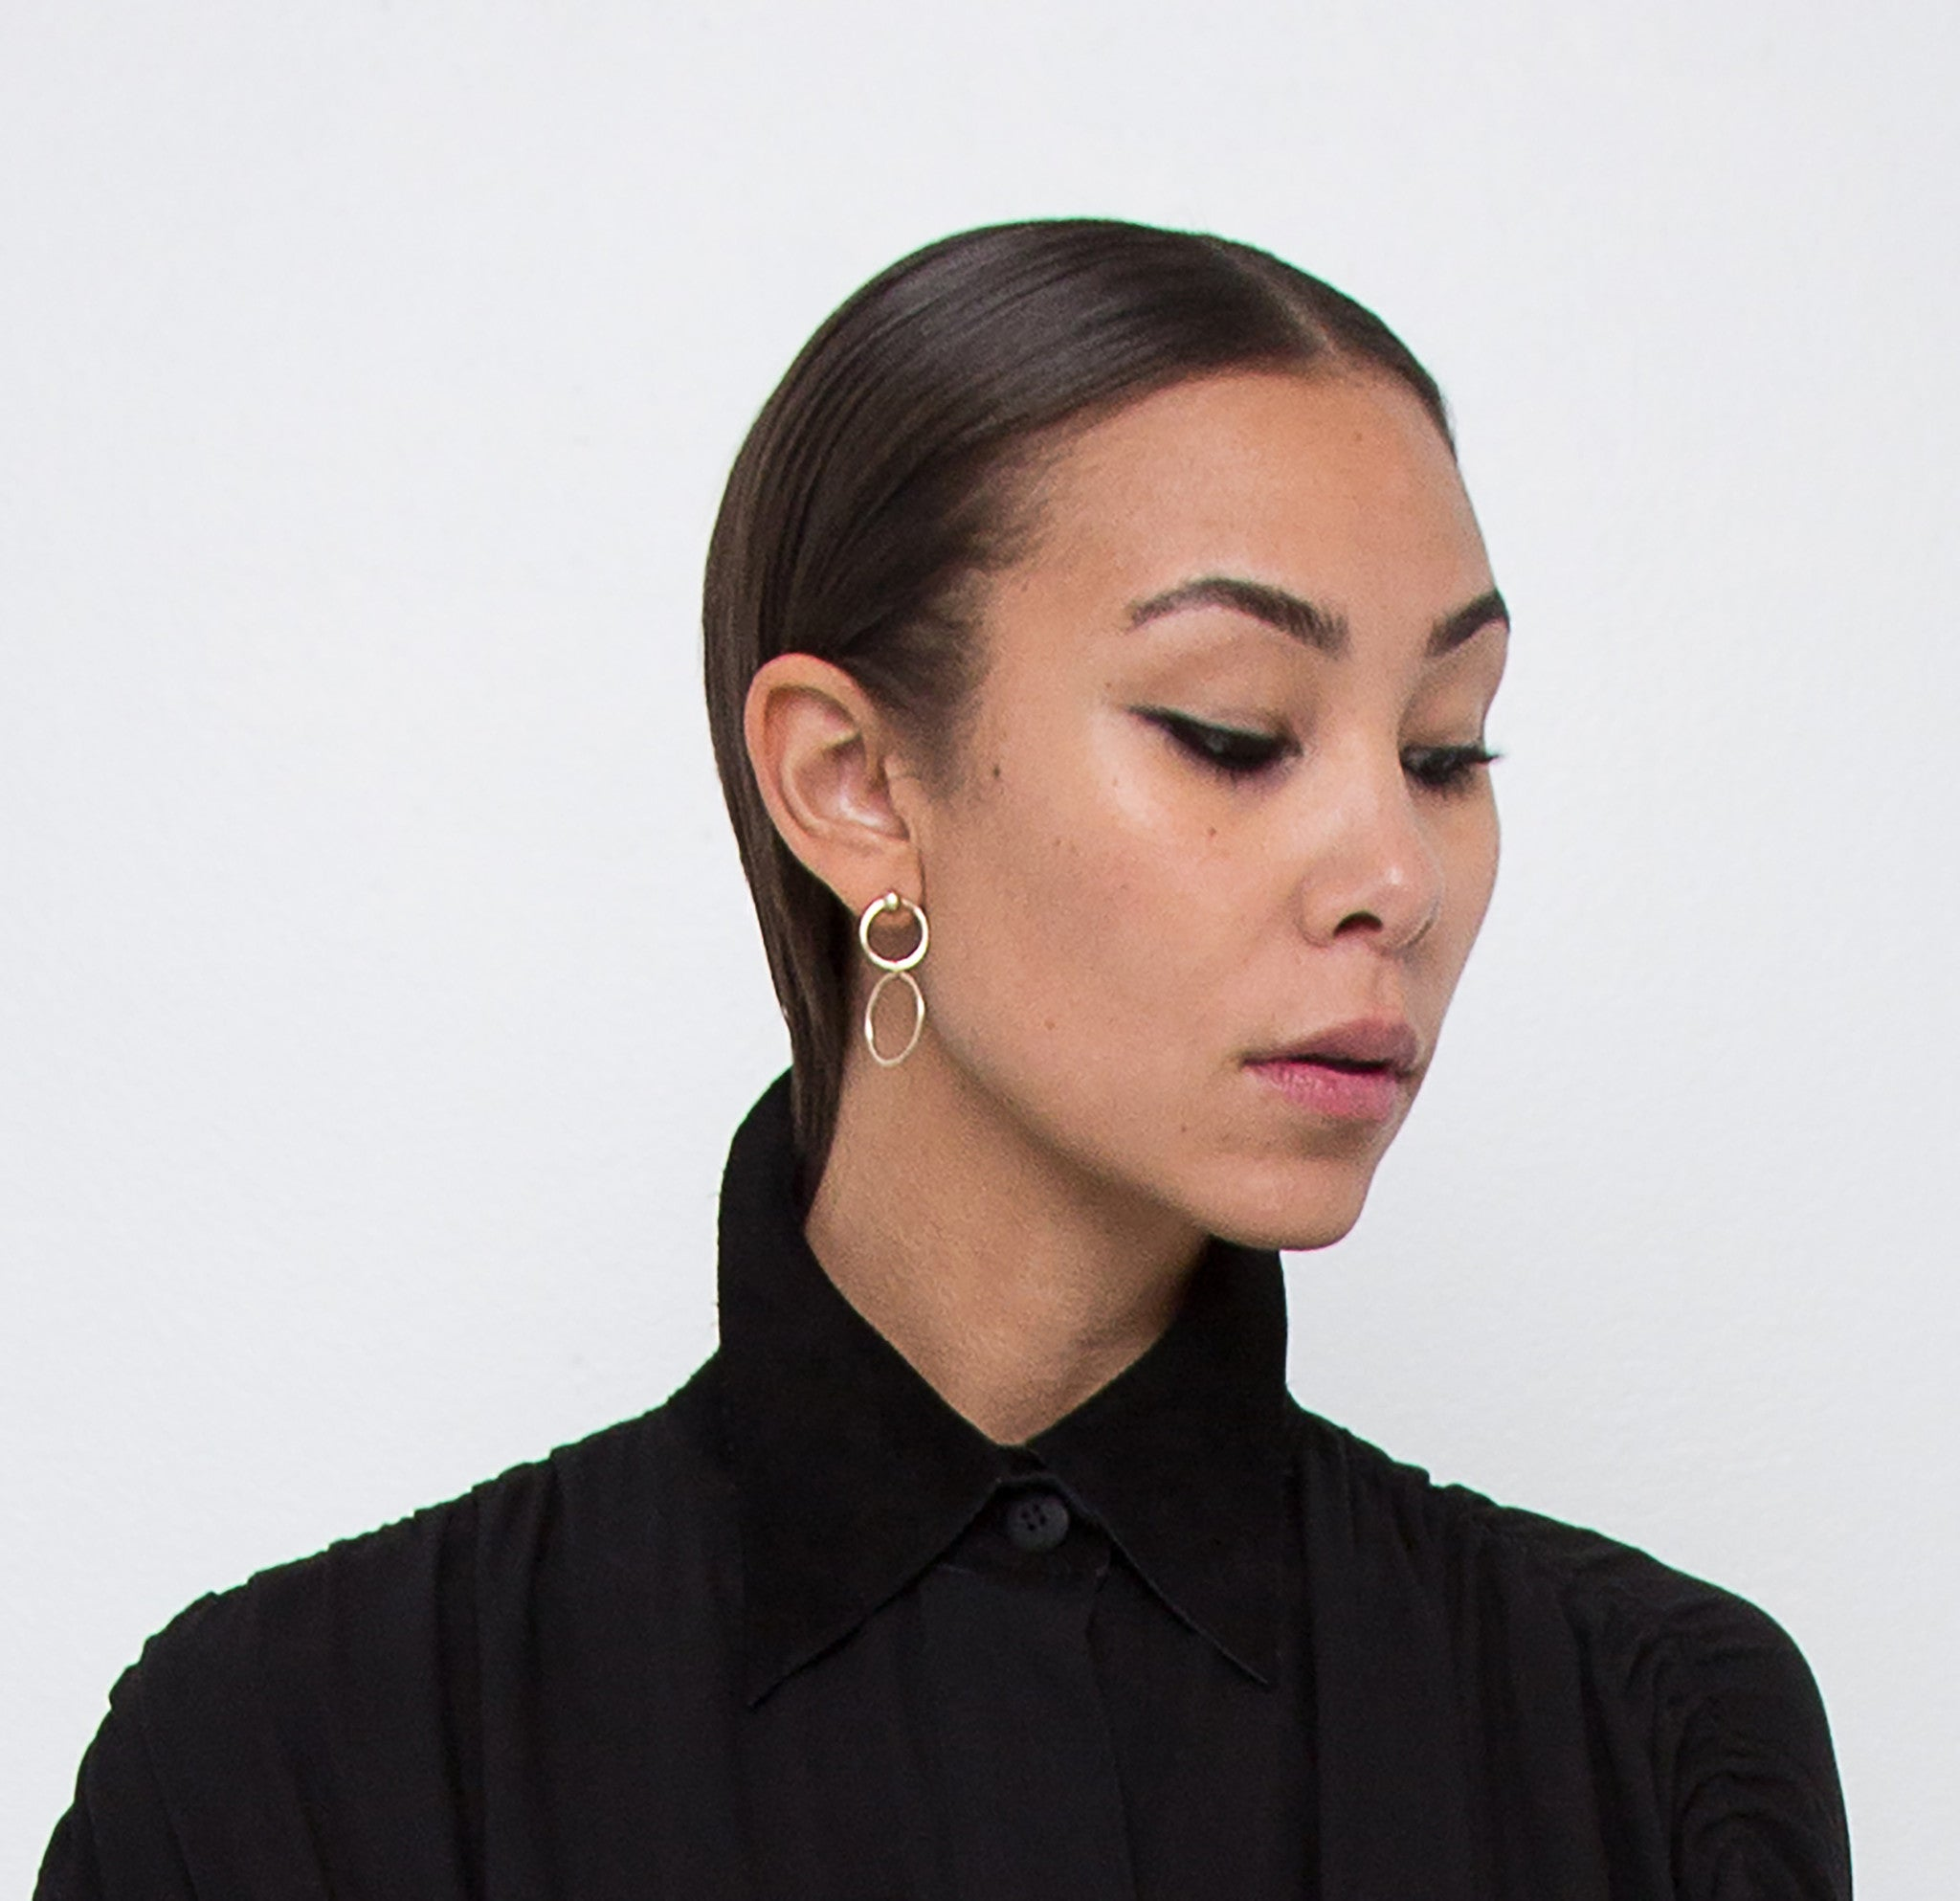 The Double Hanging Hoops Stud Earrings Wendy Nichol Fine Jewelry Designer Delicate Dangle Handmade in NYC solid 14k Gold